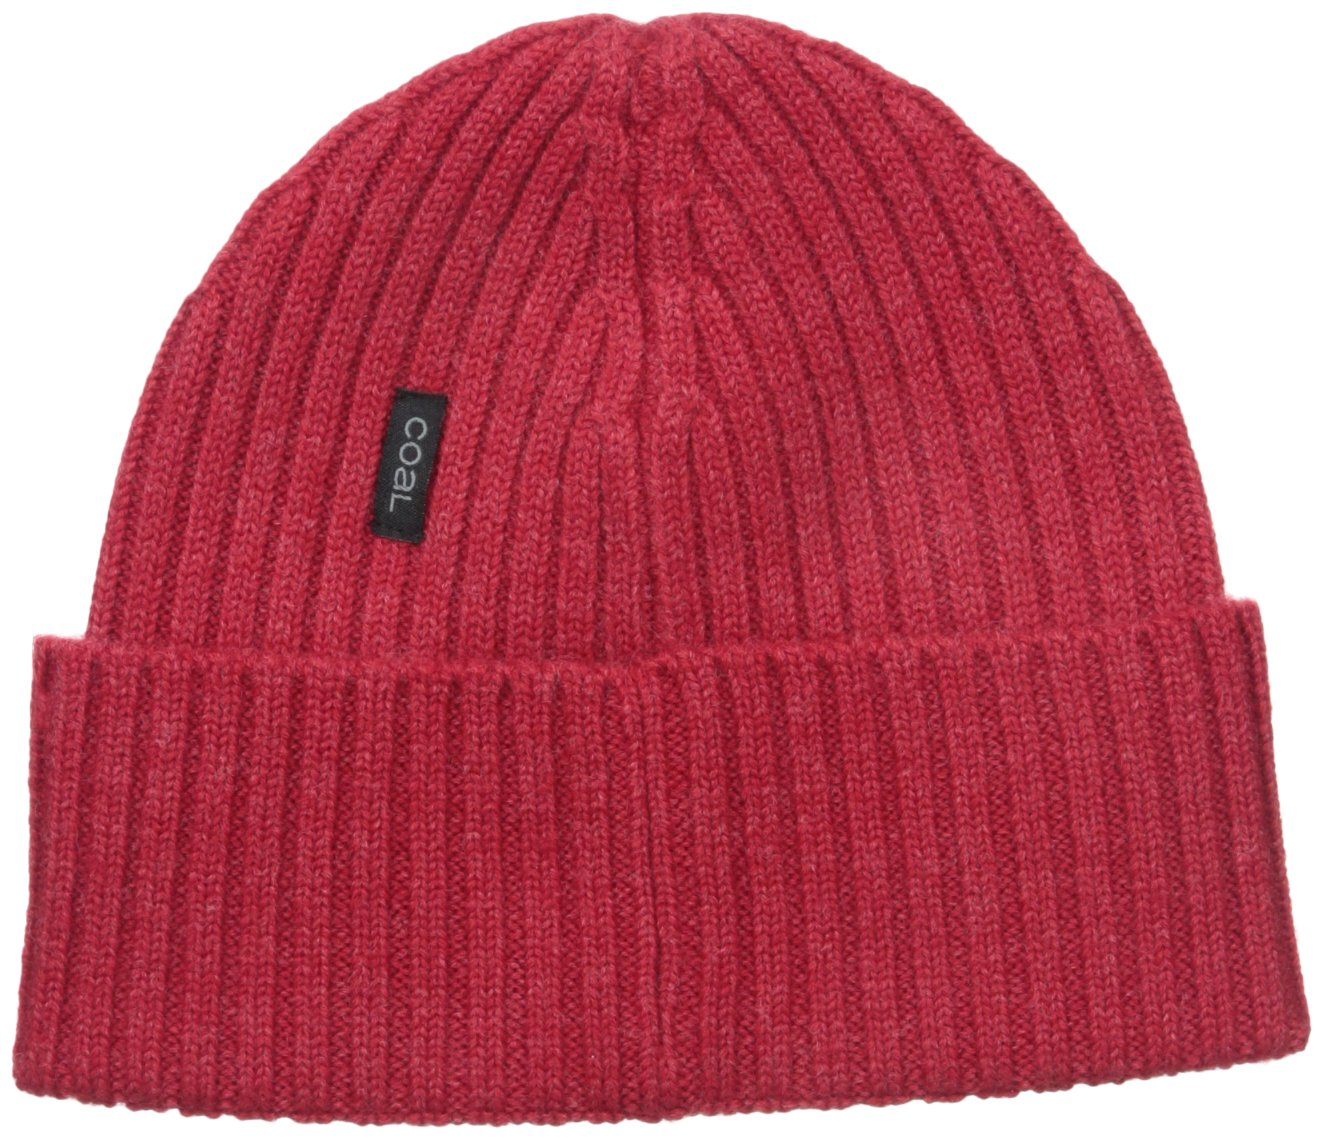 Coal Men's The Emerson Fine Knit Merino Beanie Hat, Heather Red, One Size